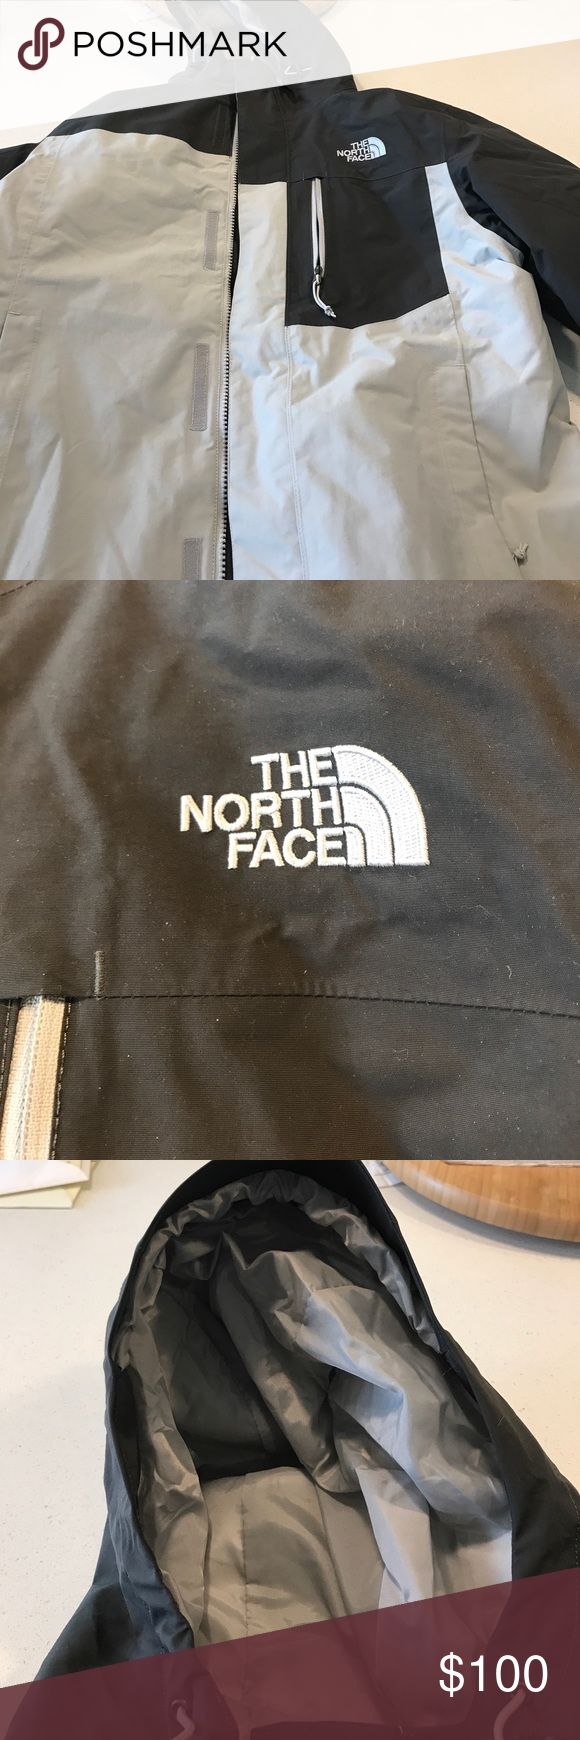 Men's Small The North Face Ski Jacket Very warm ski jacket with a removal lining. Has a hood as well. Three zippered pockets, zipper and Velcro on the front. Adjustable sleeves with velcro. A true Colorado ski jacket! The North Face Jackets & Coats Ski & Snowboard